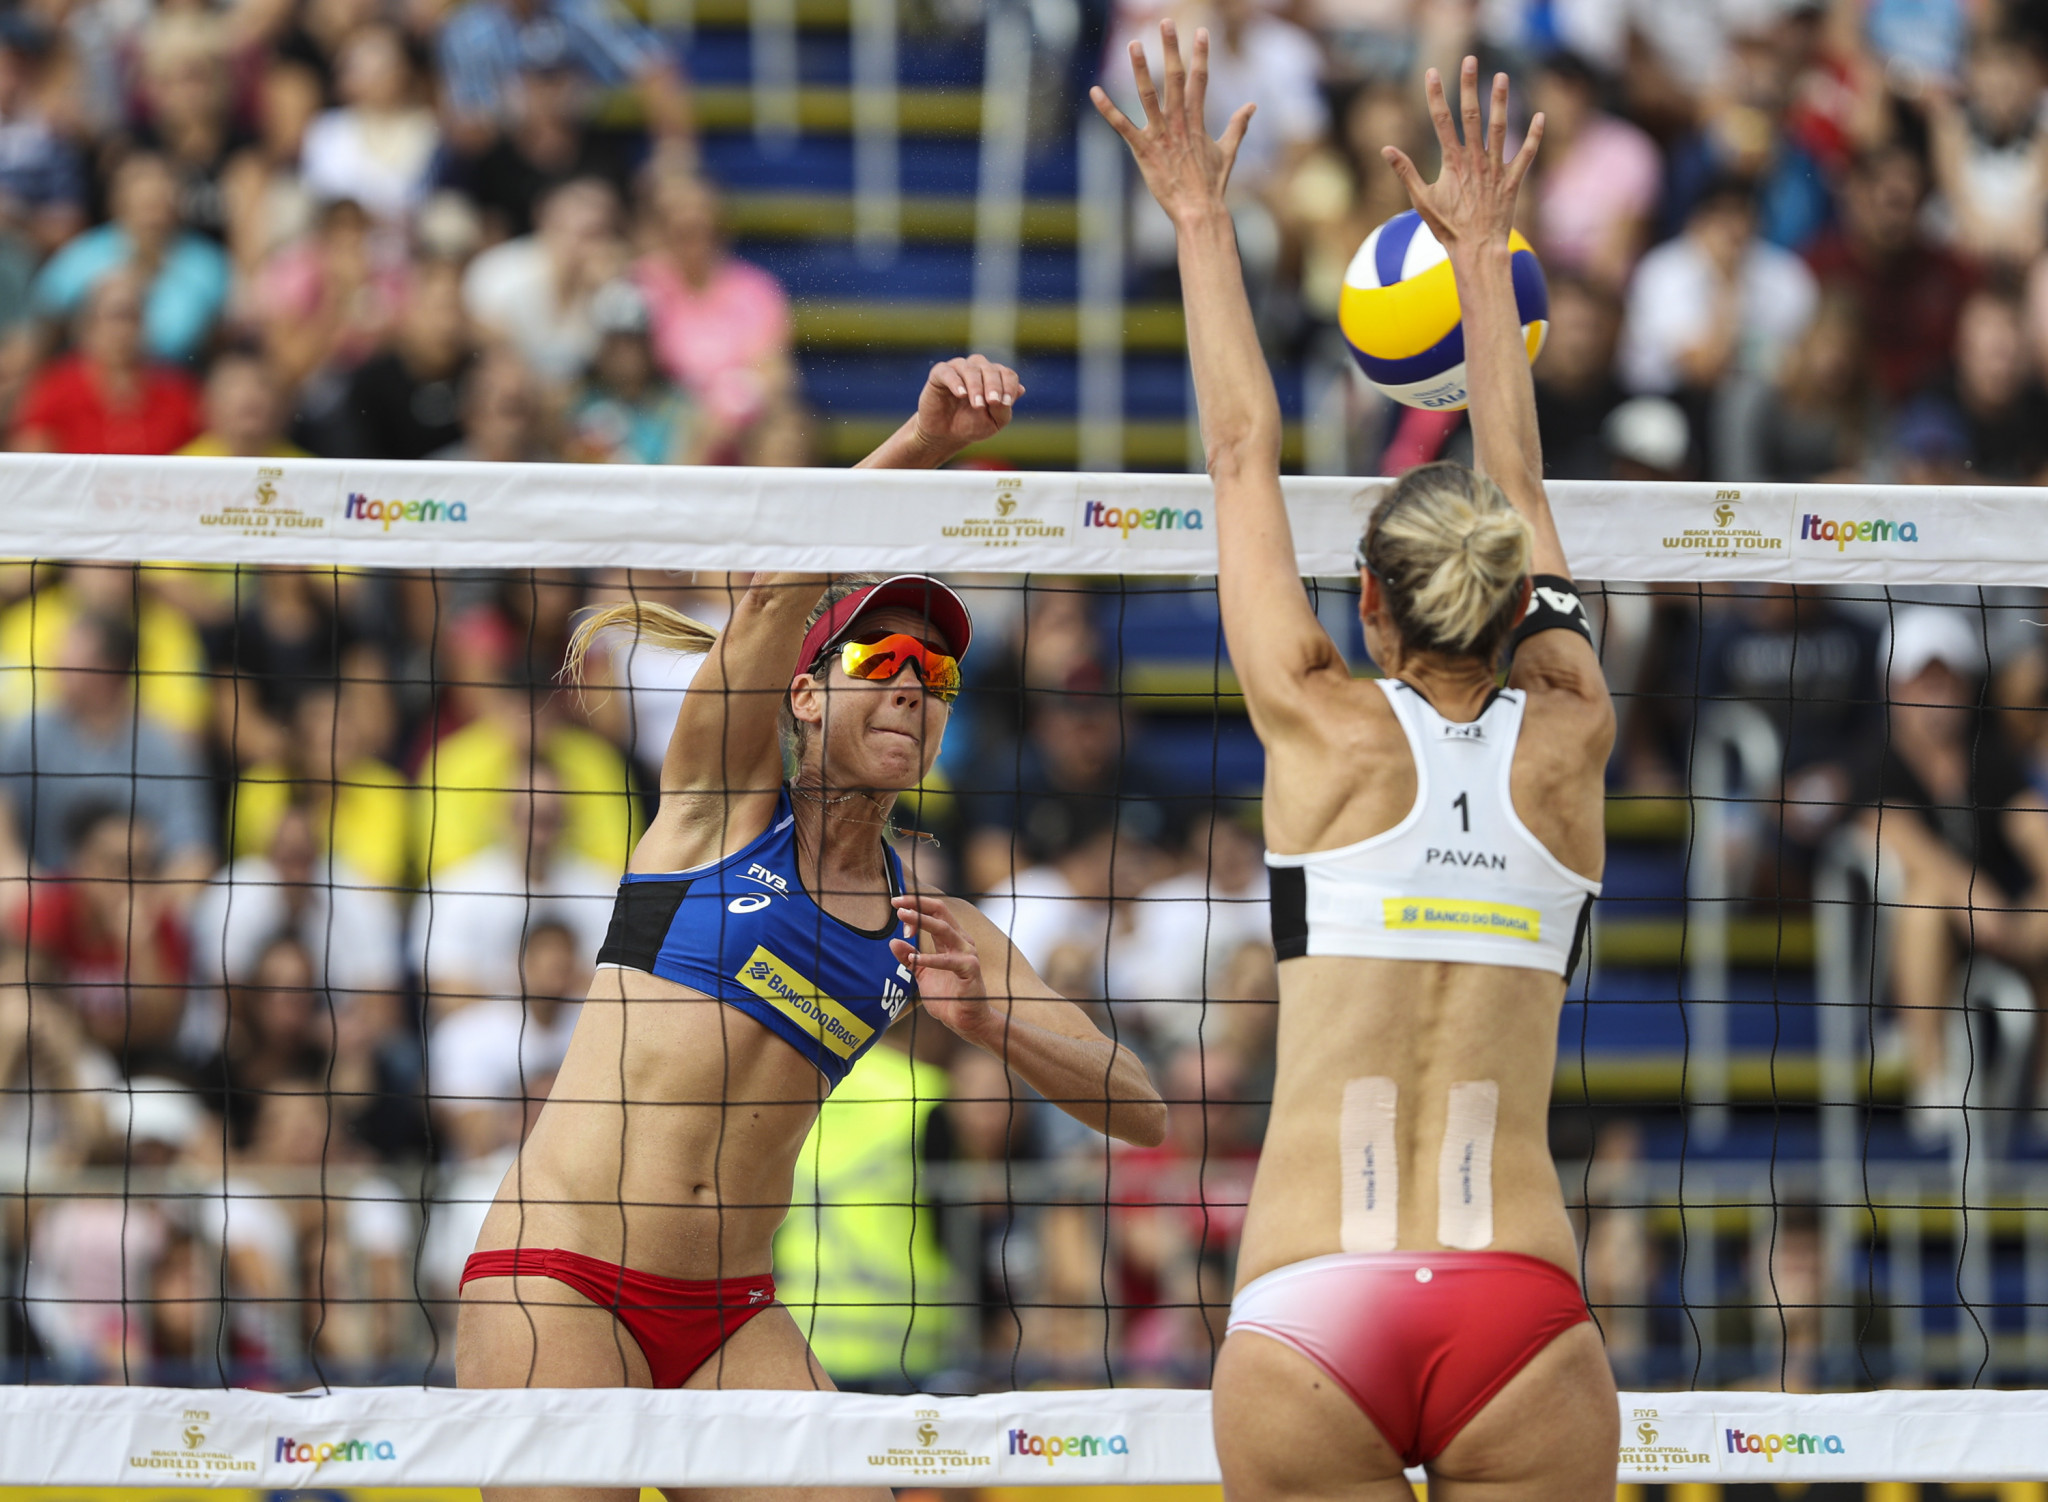 FIVB cancels four events and delays Under-19 Beach Volleyball World Championships over coronavirus crisis